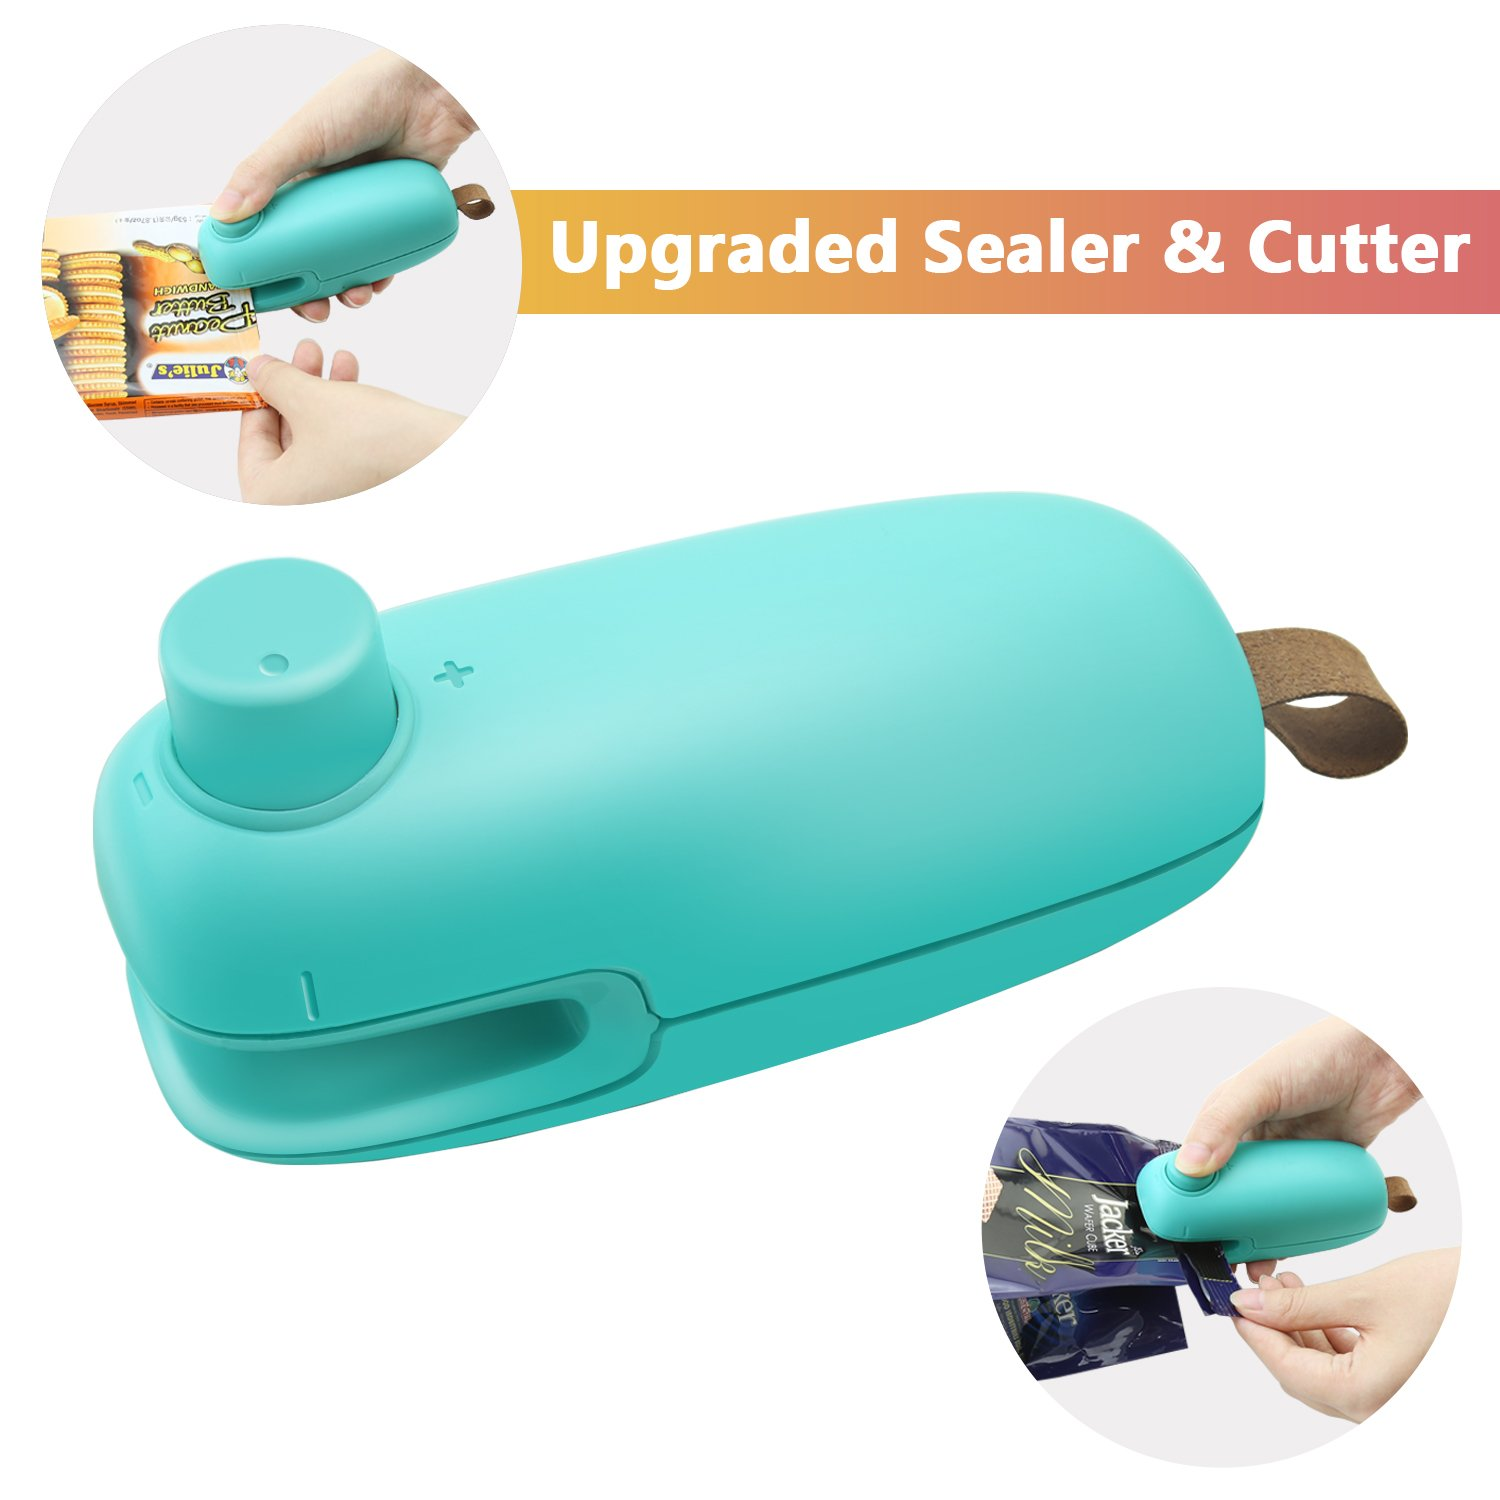 Bag Heat Sealer & Cutter, Rytaki Newest Handheld Bags Heat Sealer Cutter Machine for Plastic Food Potato Chip Saver or Fresh Bag, Battery Operated 2-in-1 Mini Portable Sealer (2018 Upgraded Version)